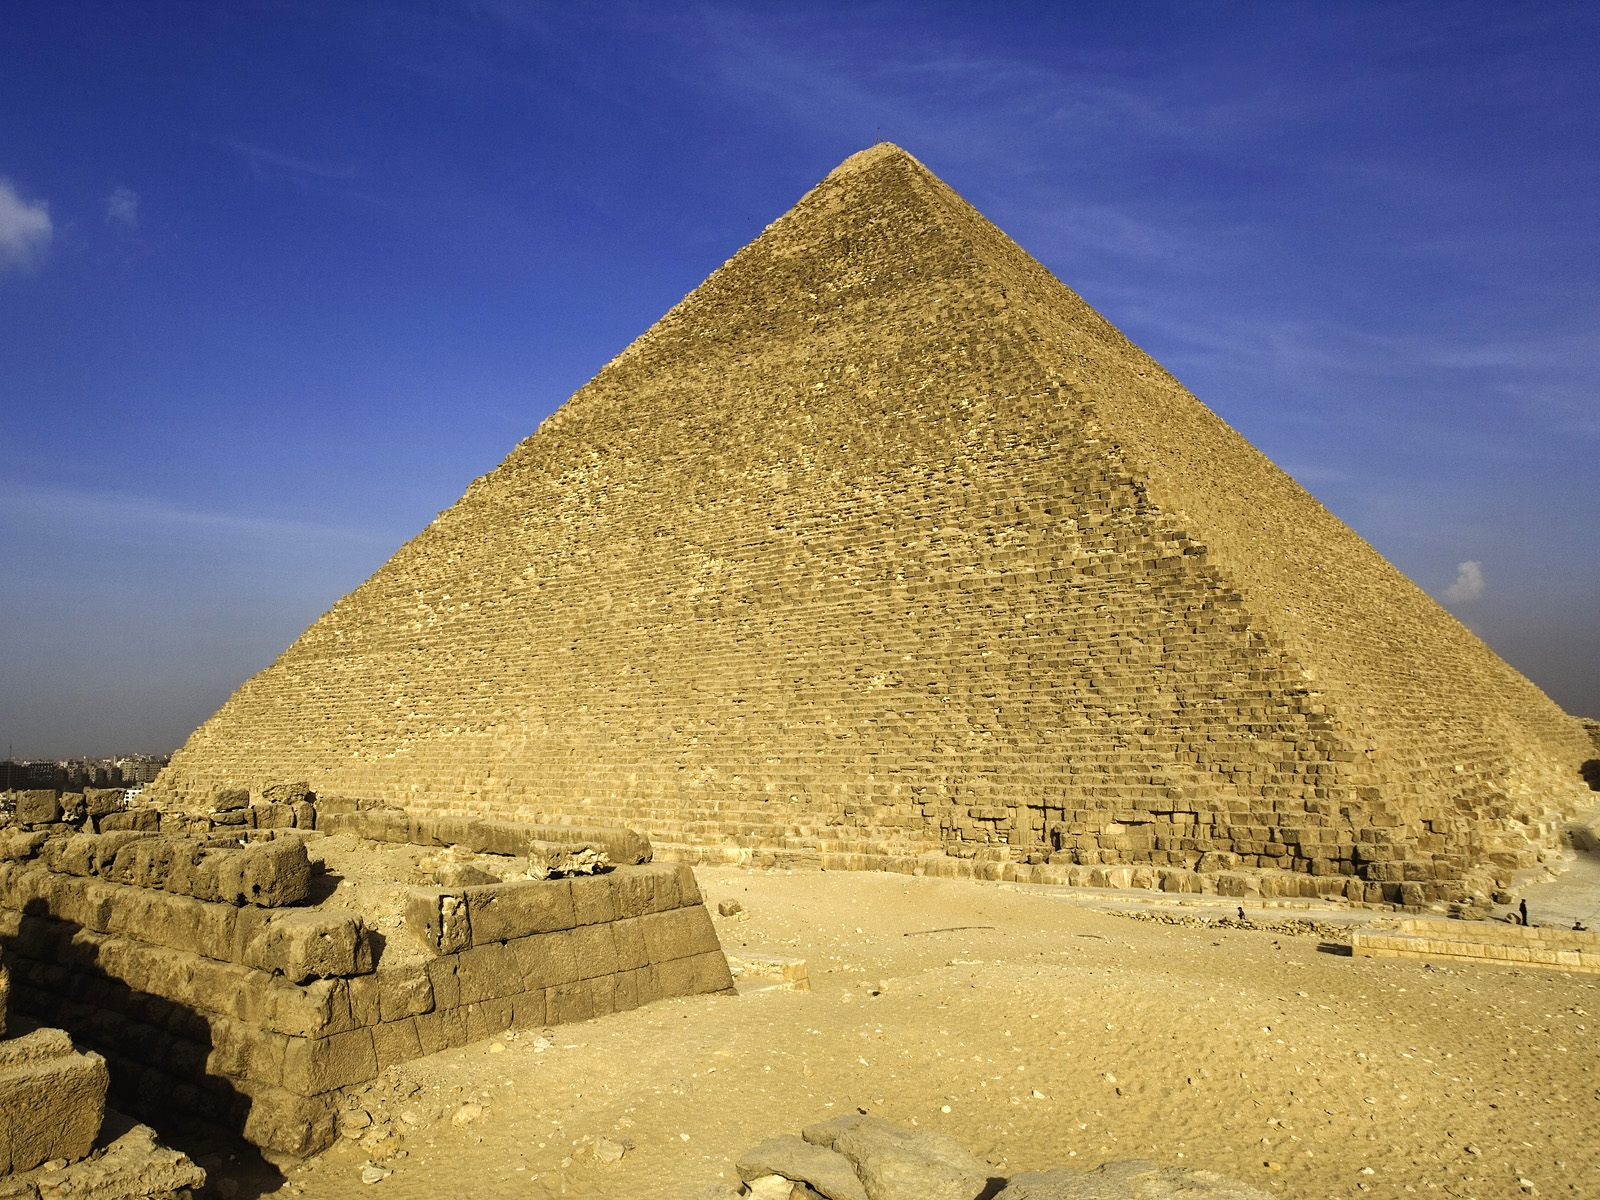 The Great Pyramid Egypt 378.91 Kb